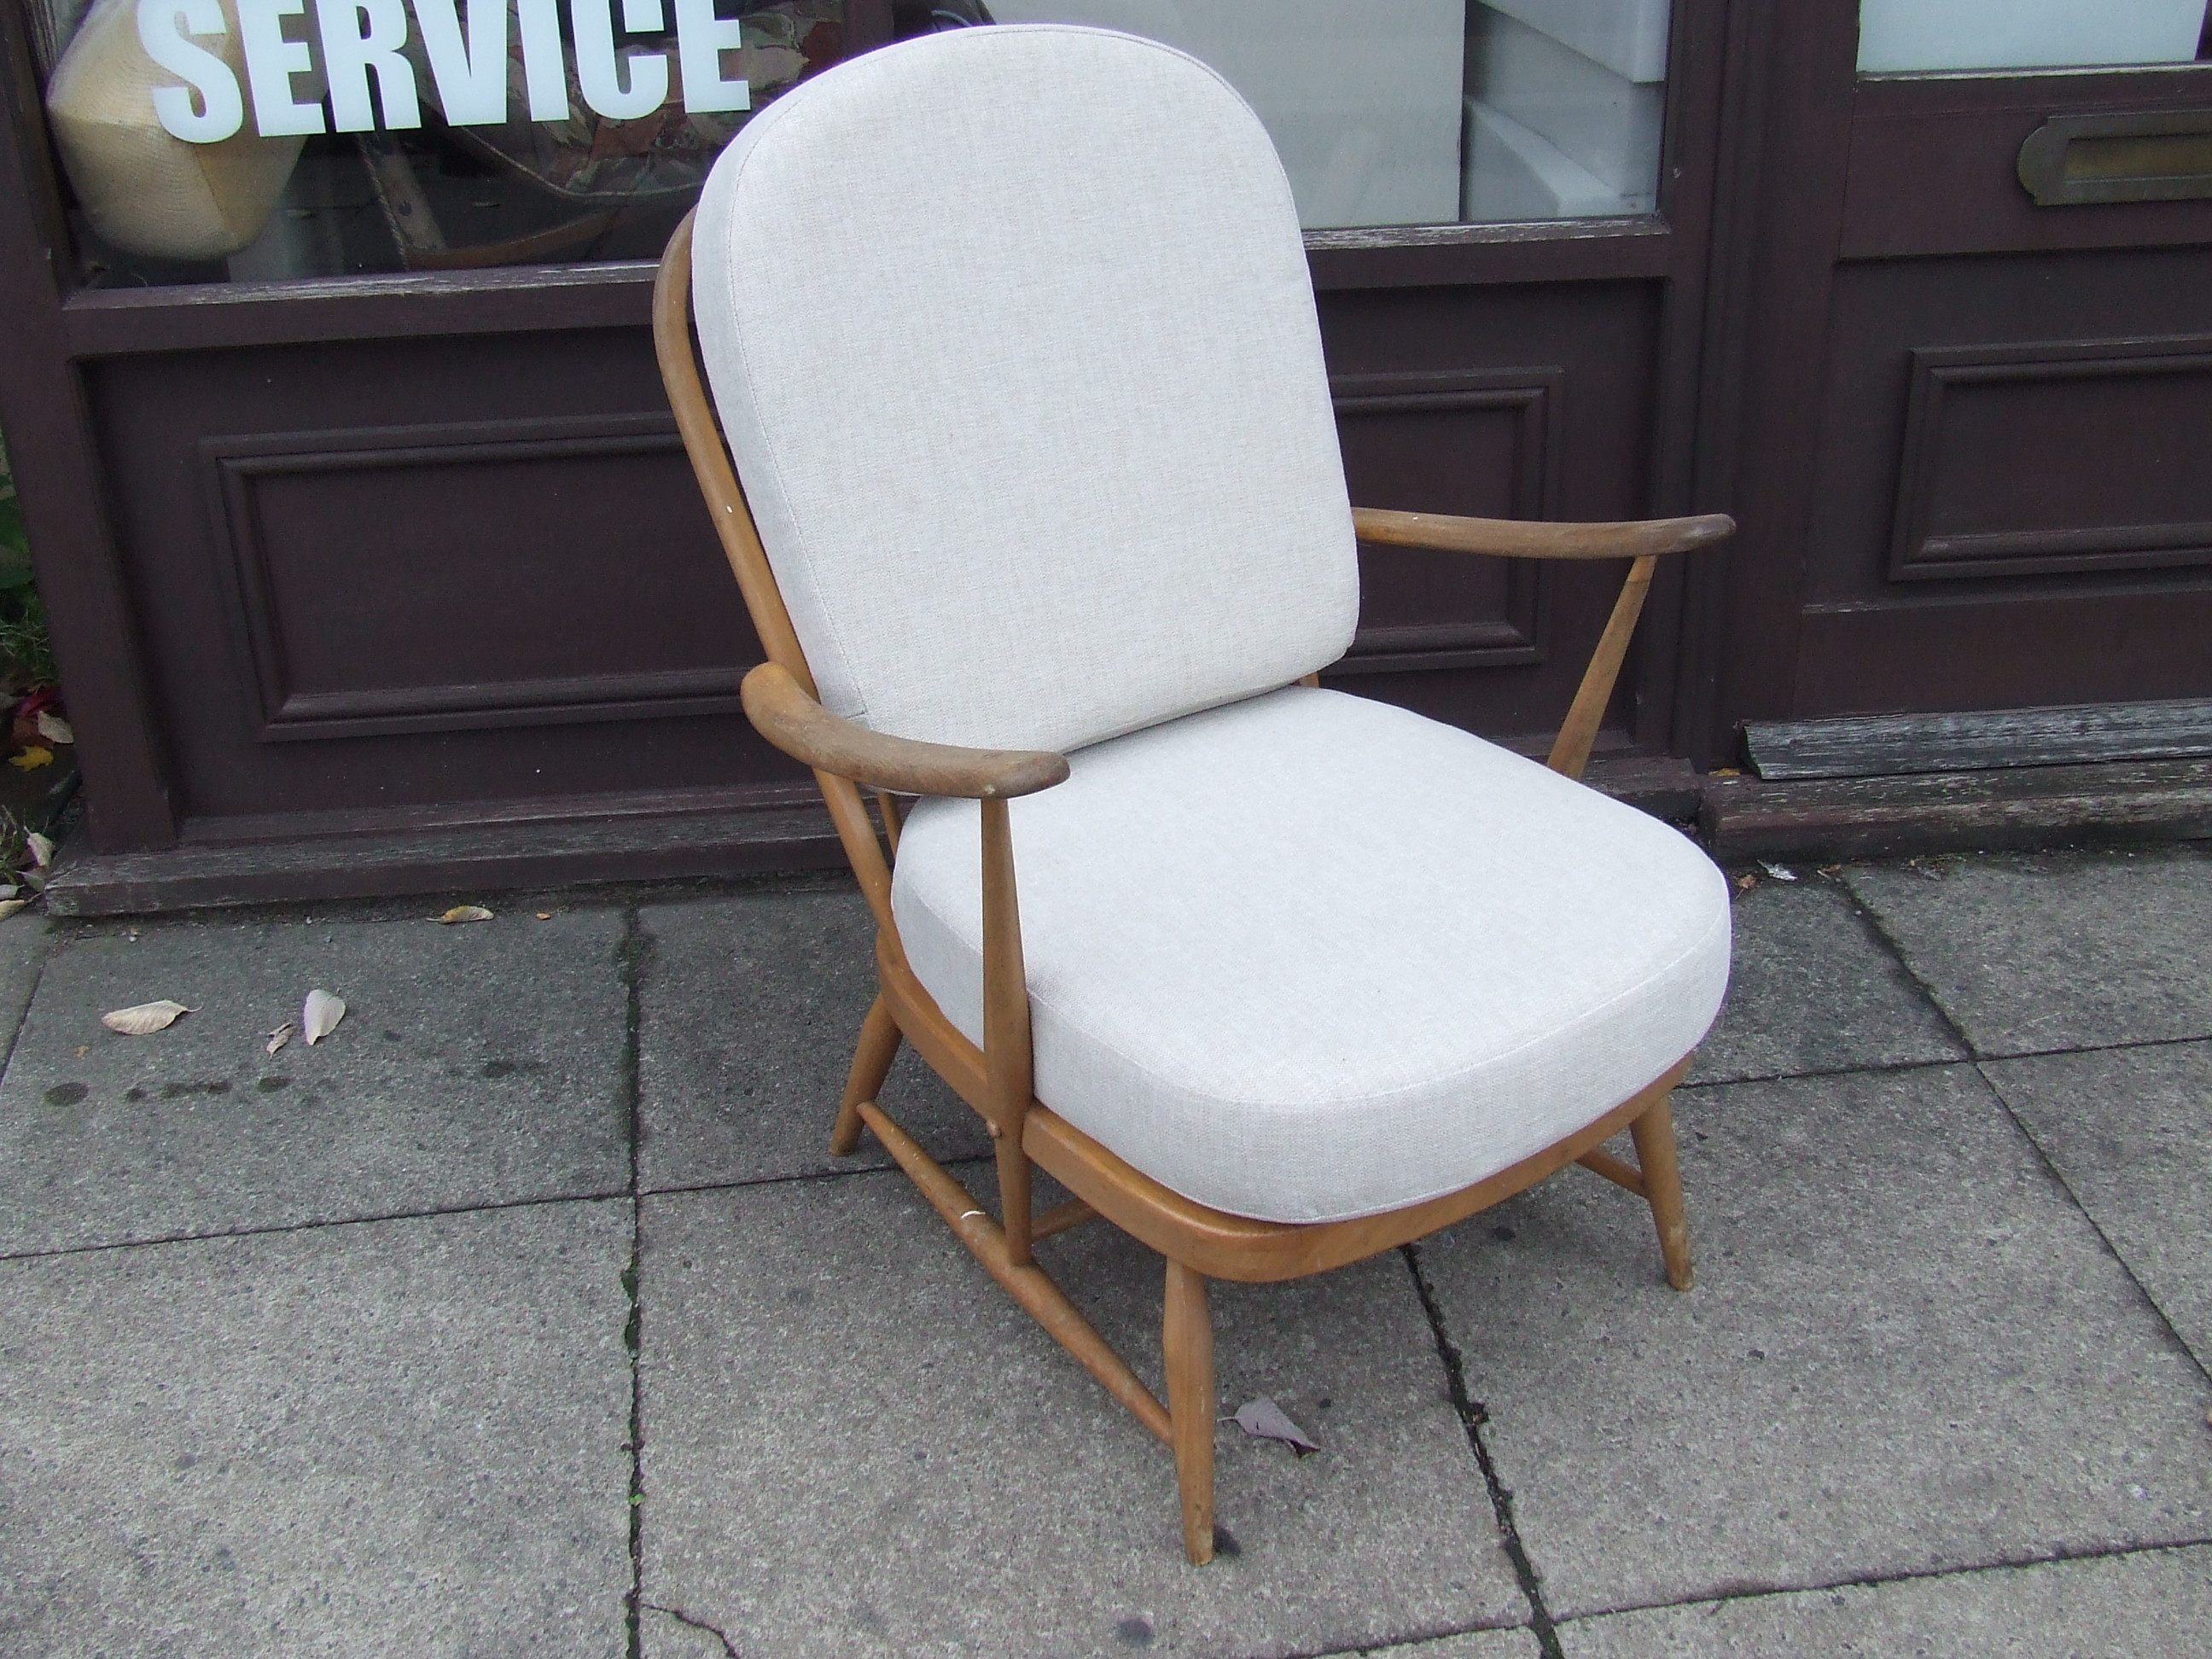 The Ercol Windsor easy chair No 334  The cost of a complete set of cushions  for a chair is  160 00  plus  20 00 courier charge  Similar product from  Ercol cushions   furniture. Ercol Easy Chairs For Sale. Home Design Ideas